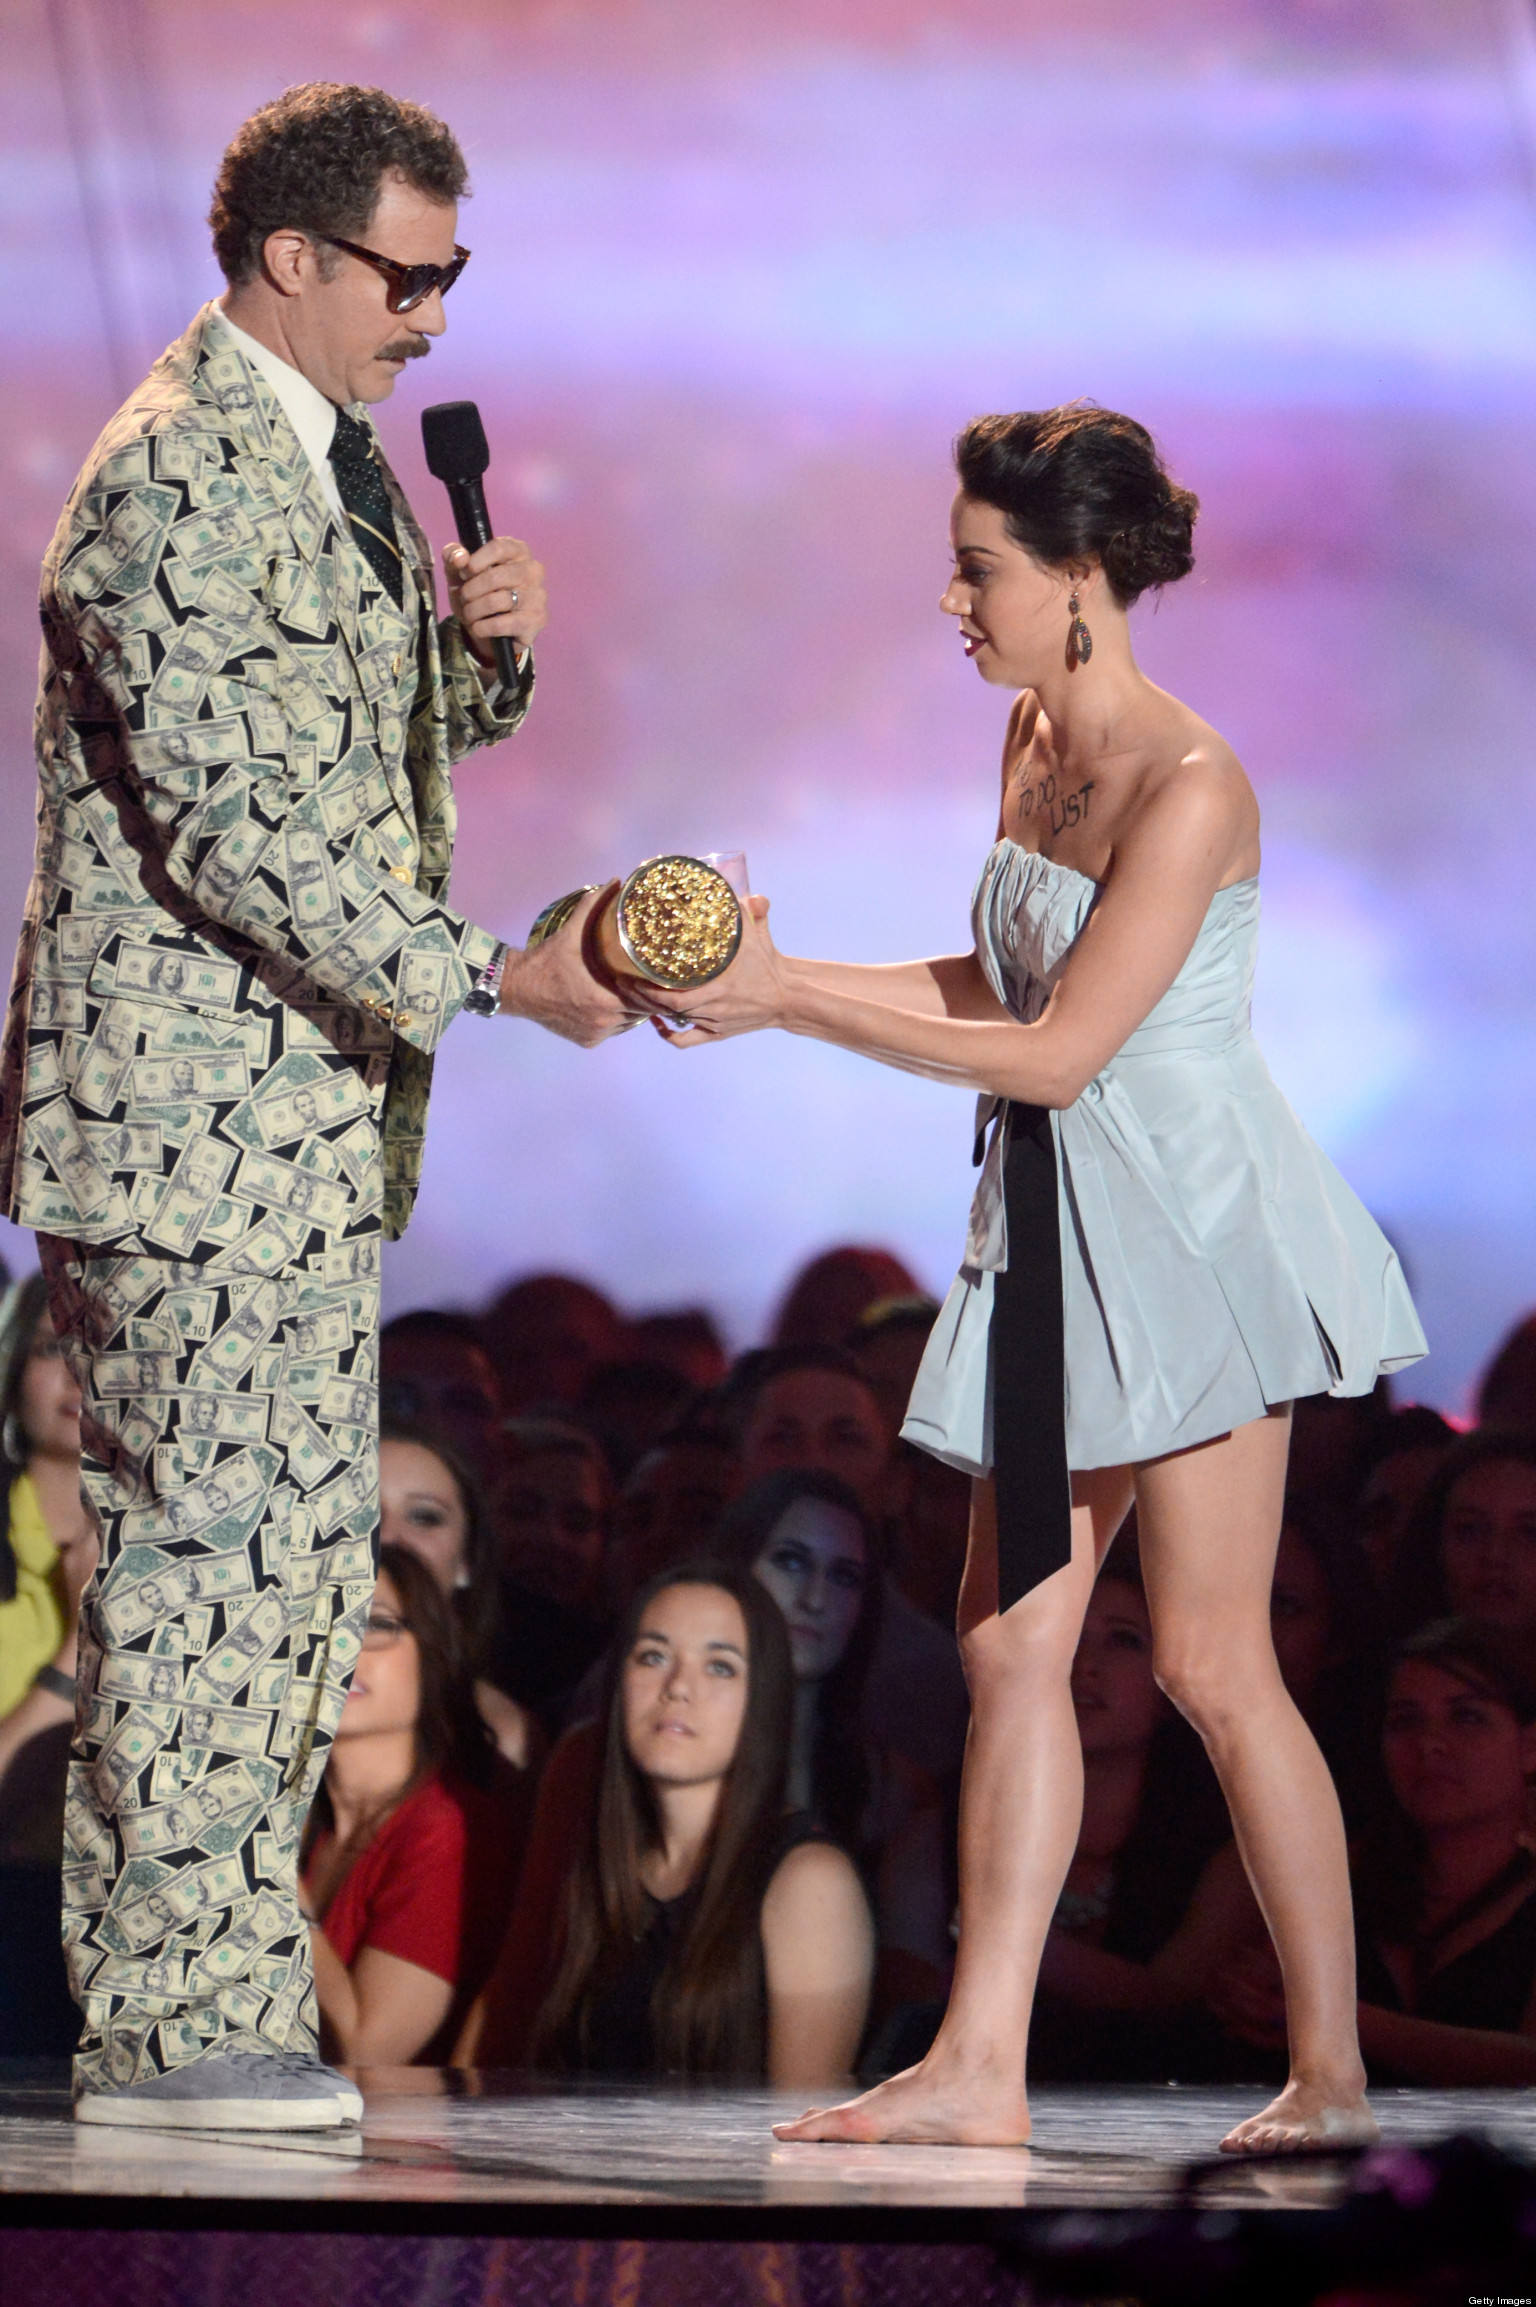 aubrey plaza ejected from mtv movie awards after crashing